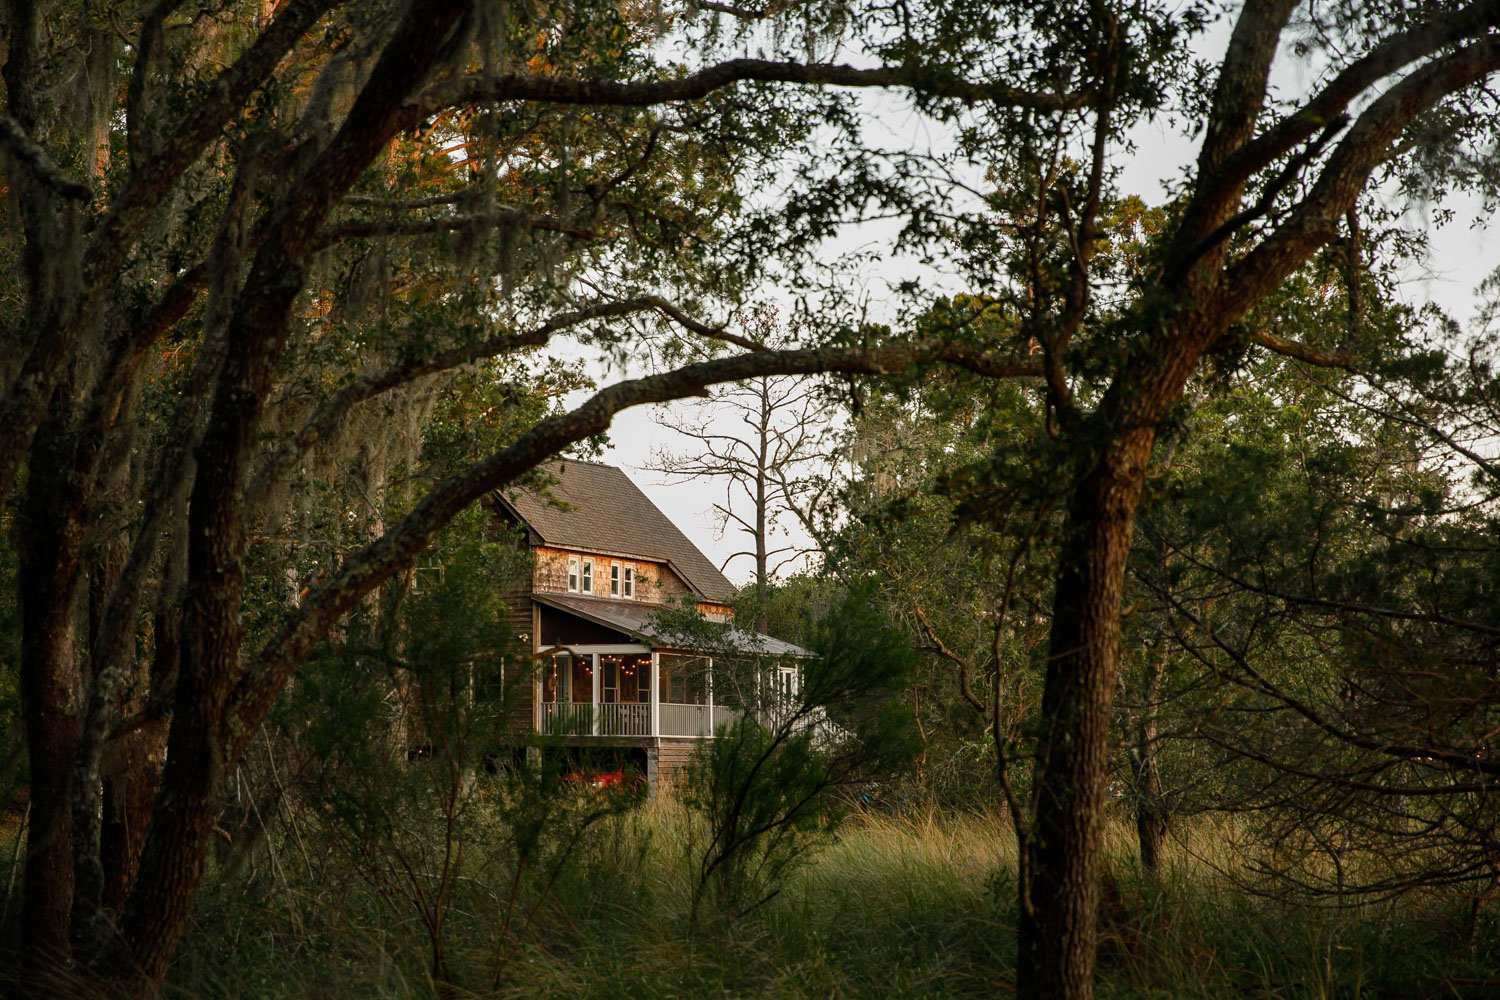 """Even Michelle Jewell is surprised that she fell in love with the marshlands that back up to her home in Wadmalaw Island, South Carolina. The island, a 10-by-6-mile haven just south of Charleston, is quieter than its neighbors, Johns and Kiawah islands; covered in marshes, woods, and live oaks; and has long been a locals-only sort of place, with little development.    Jewell, who grew up on a farm in upstate South Carolina, and her husband, Ryan Amick, have been in the Charleston area for 15 years. Over time, they inched away from the city center—moving first to James Island, and now Wadmalaw—in search of a more peaceful location to live.    """"I'm very used to quiet, open spaces and space to garden,"""" Jewell says. """"I really wanted to get out in the country again.""""    (photographed for Curbed; words by Samantha Weiss Hills)"""